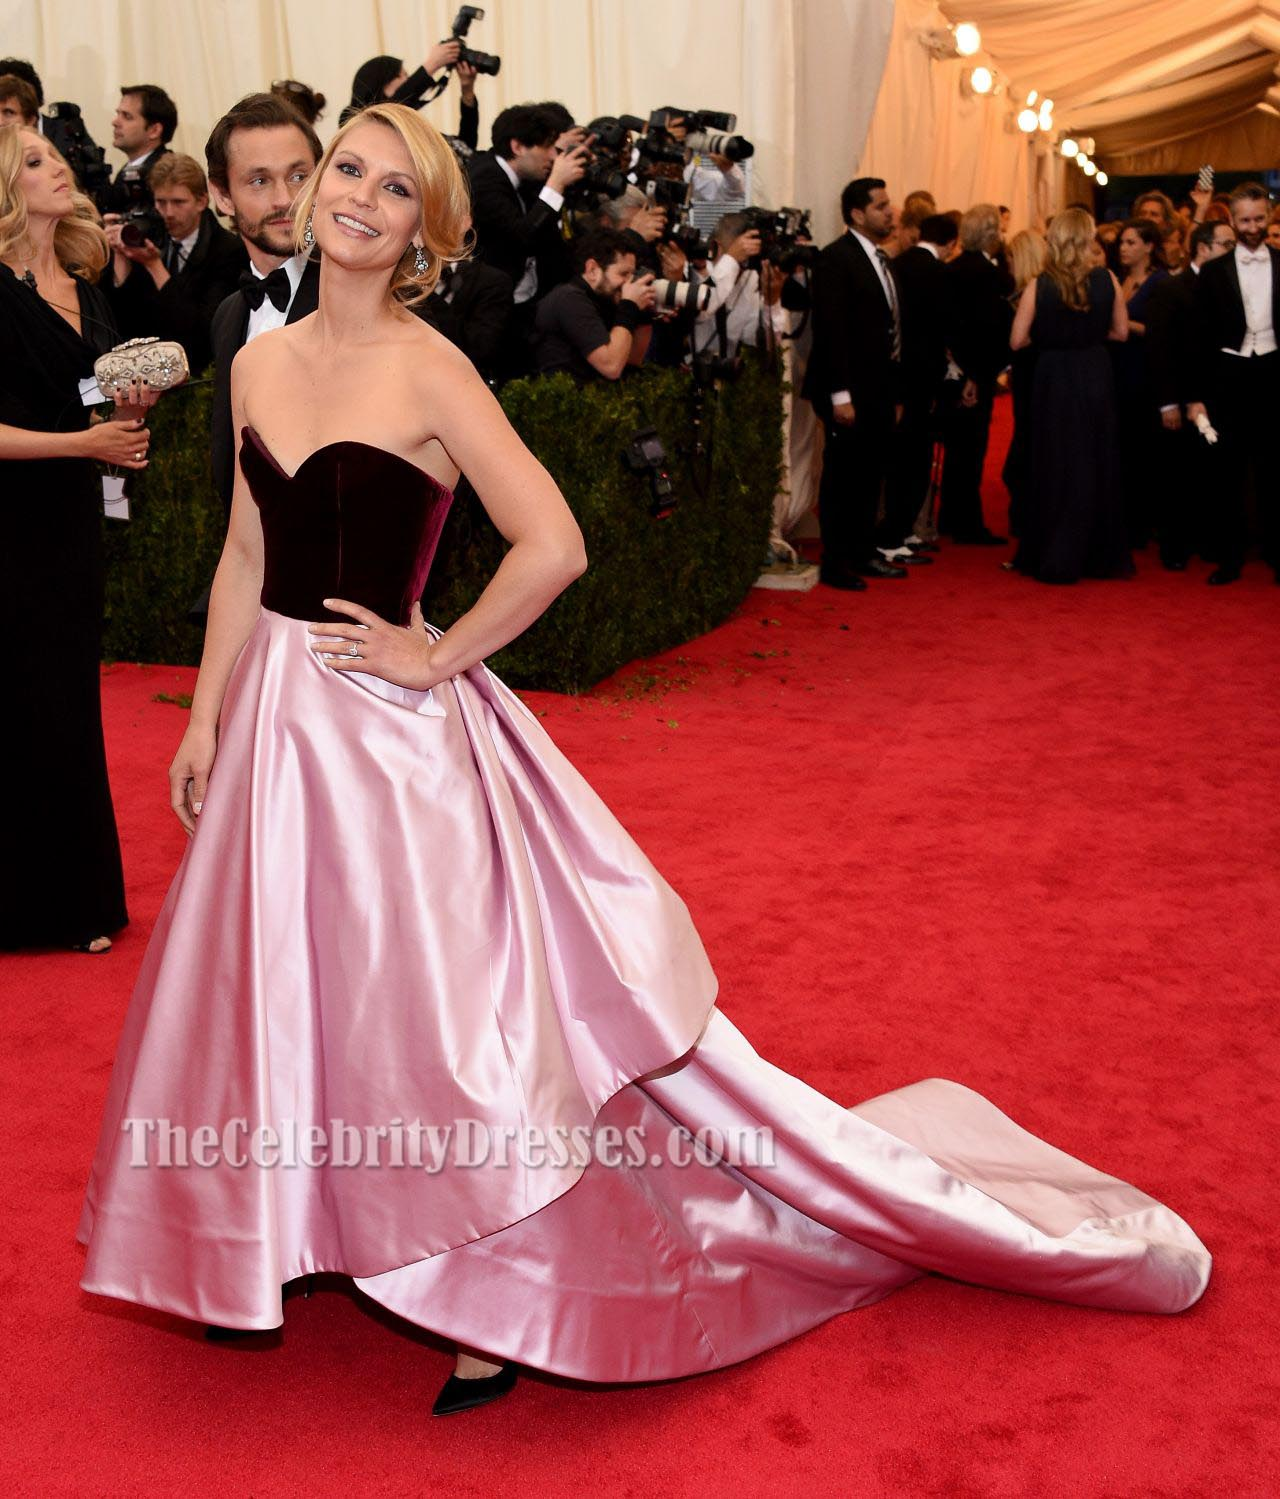 Claire danes satin formal dress ball gown 2014 met costume claire danes satin formal dress ball gown 2014 met costume institute gala thecelebritydresses nvjuhfo Gallery